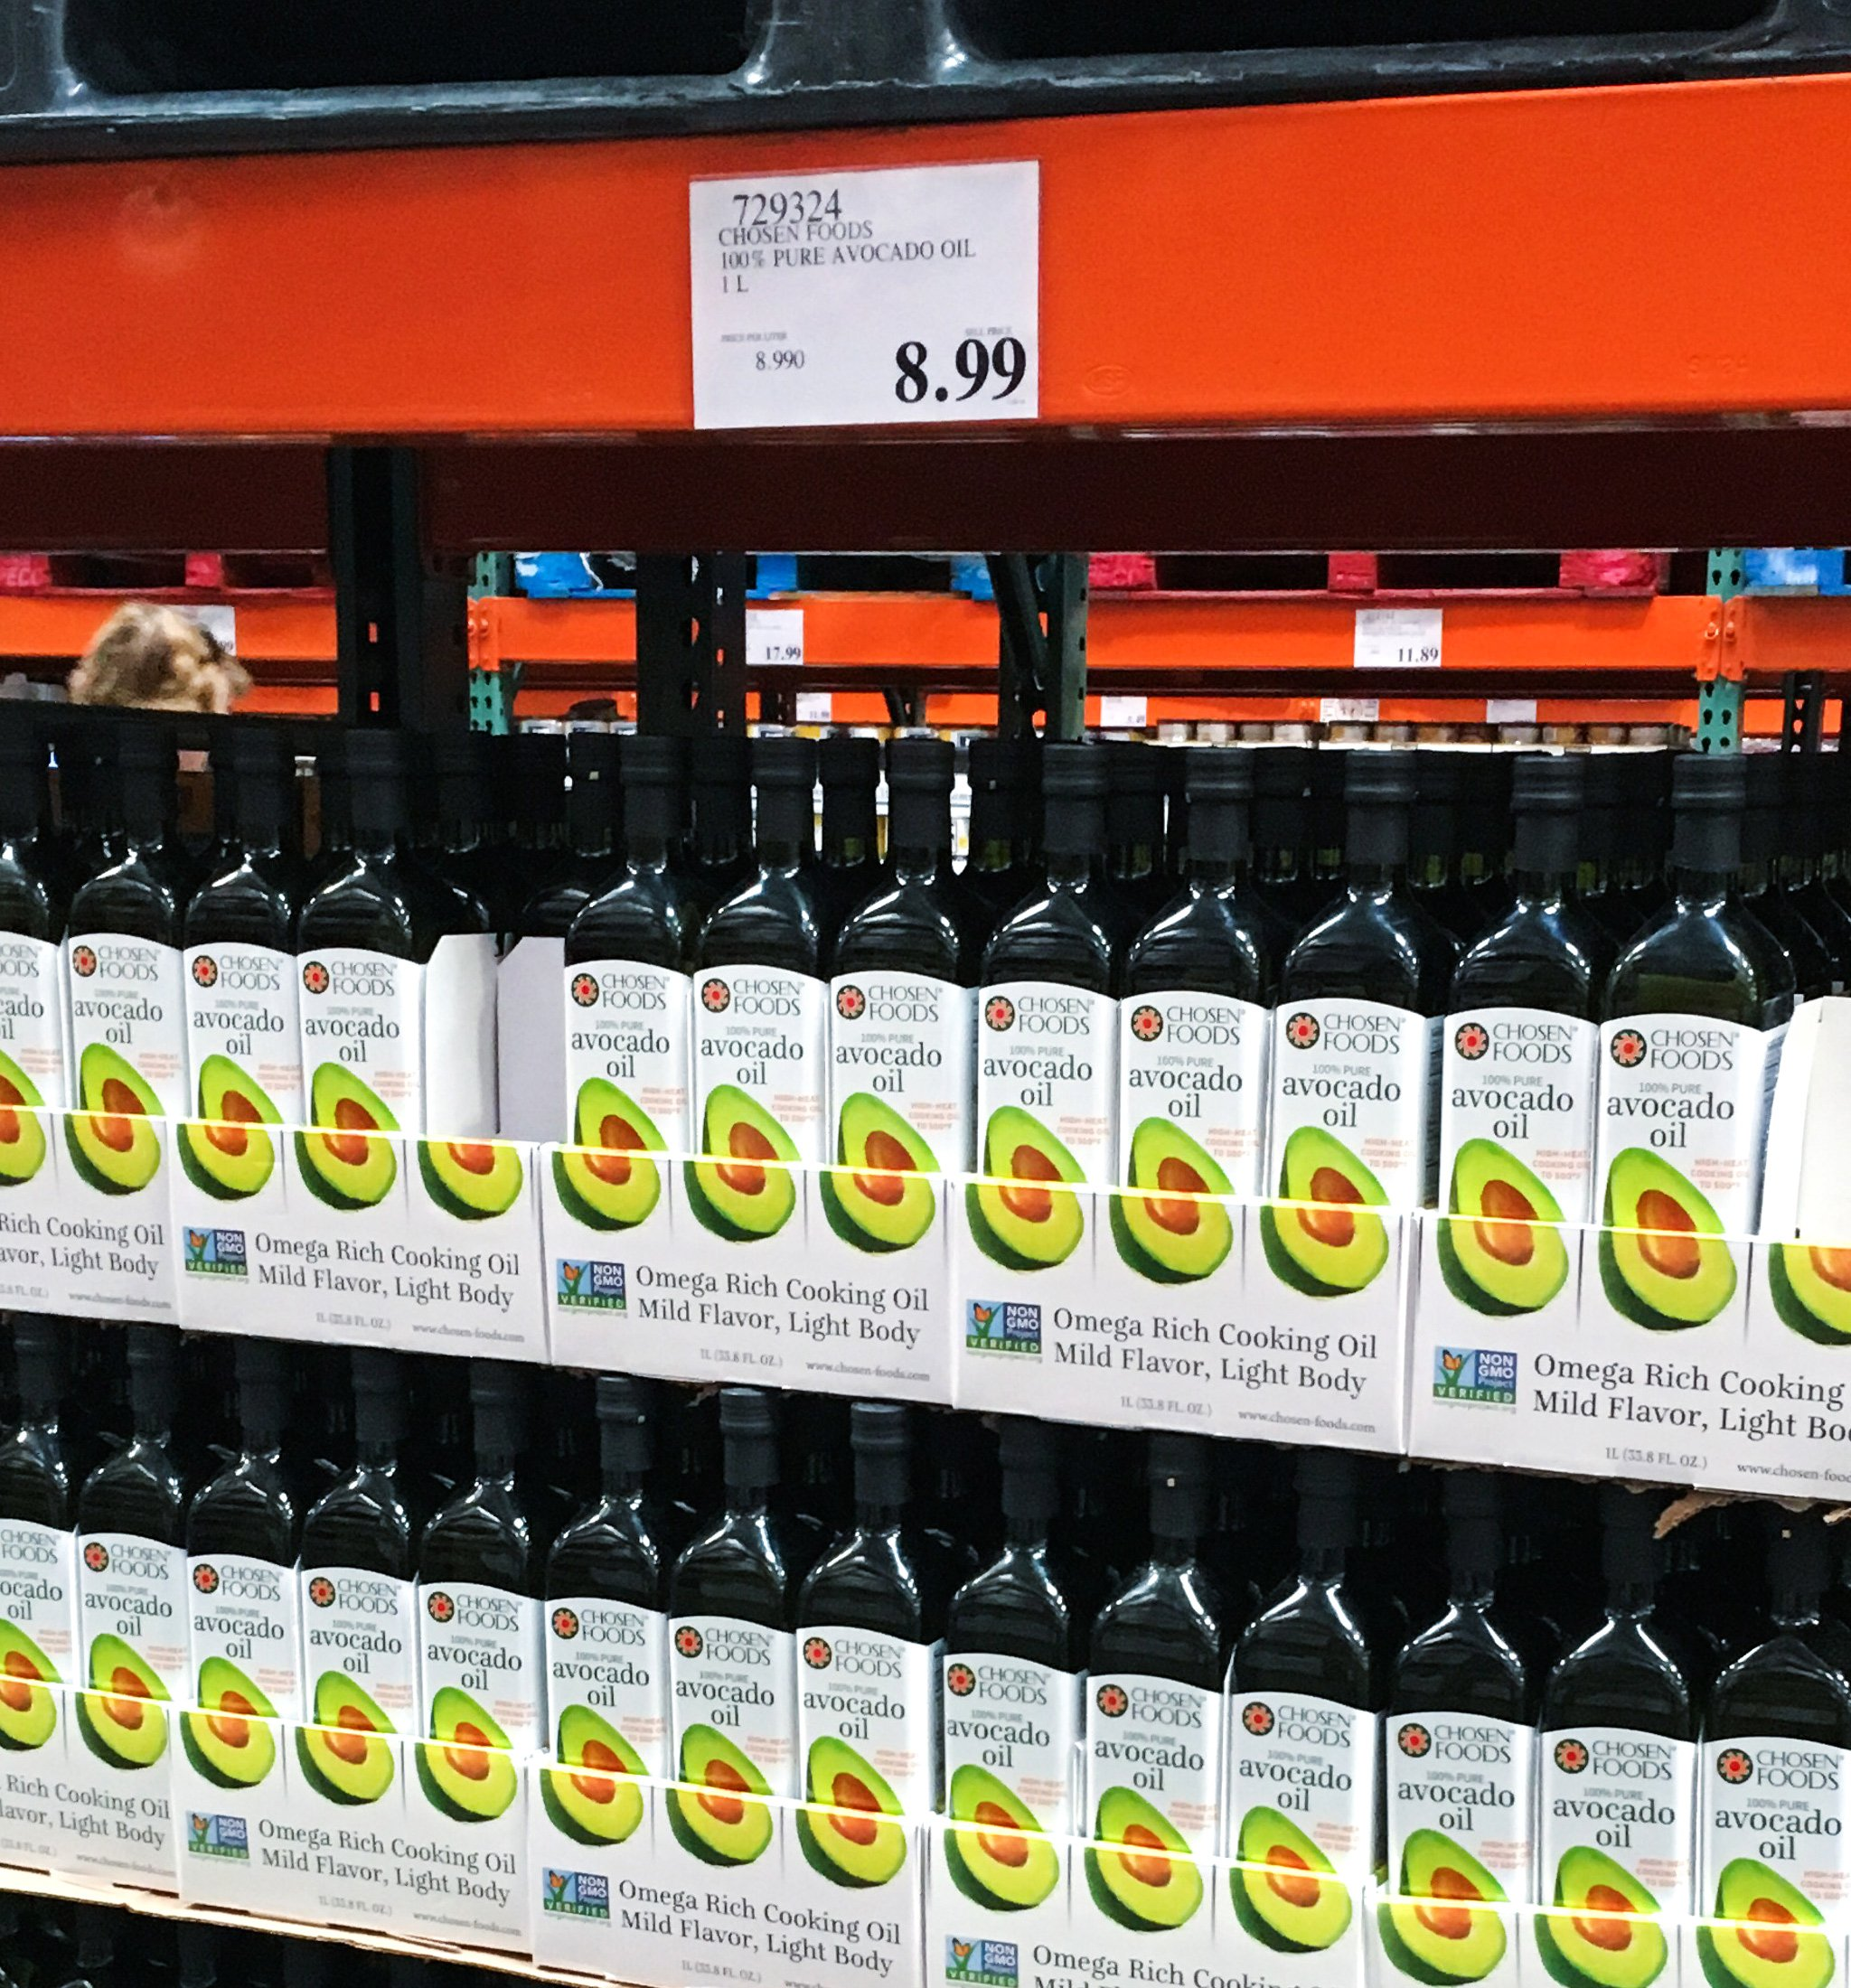 Boxes of bottles of avocado oil for sale at Costco - buying in bulk is one of the 12 Tips to Help You Master Your Weekly Meal Prep Routine